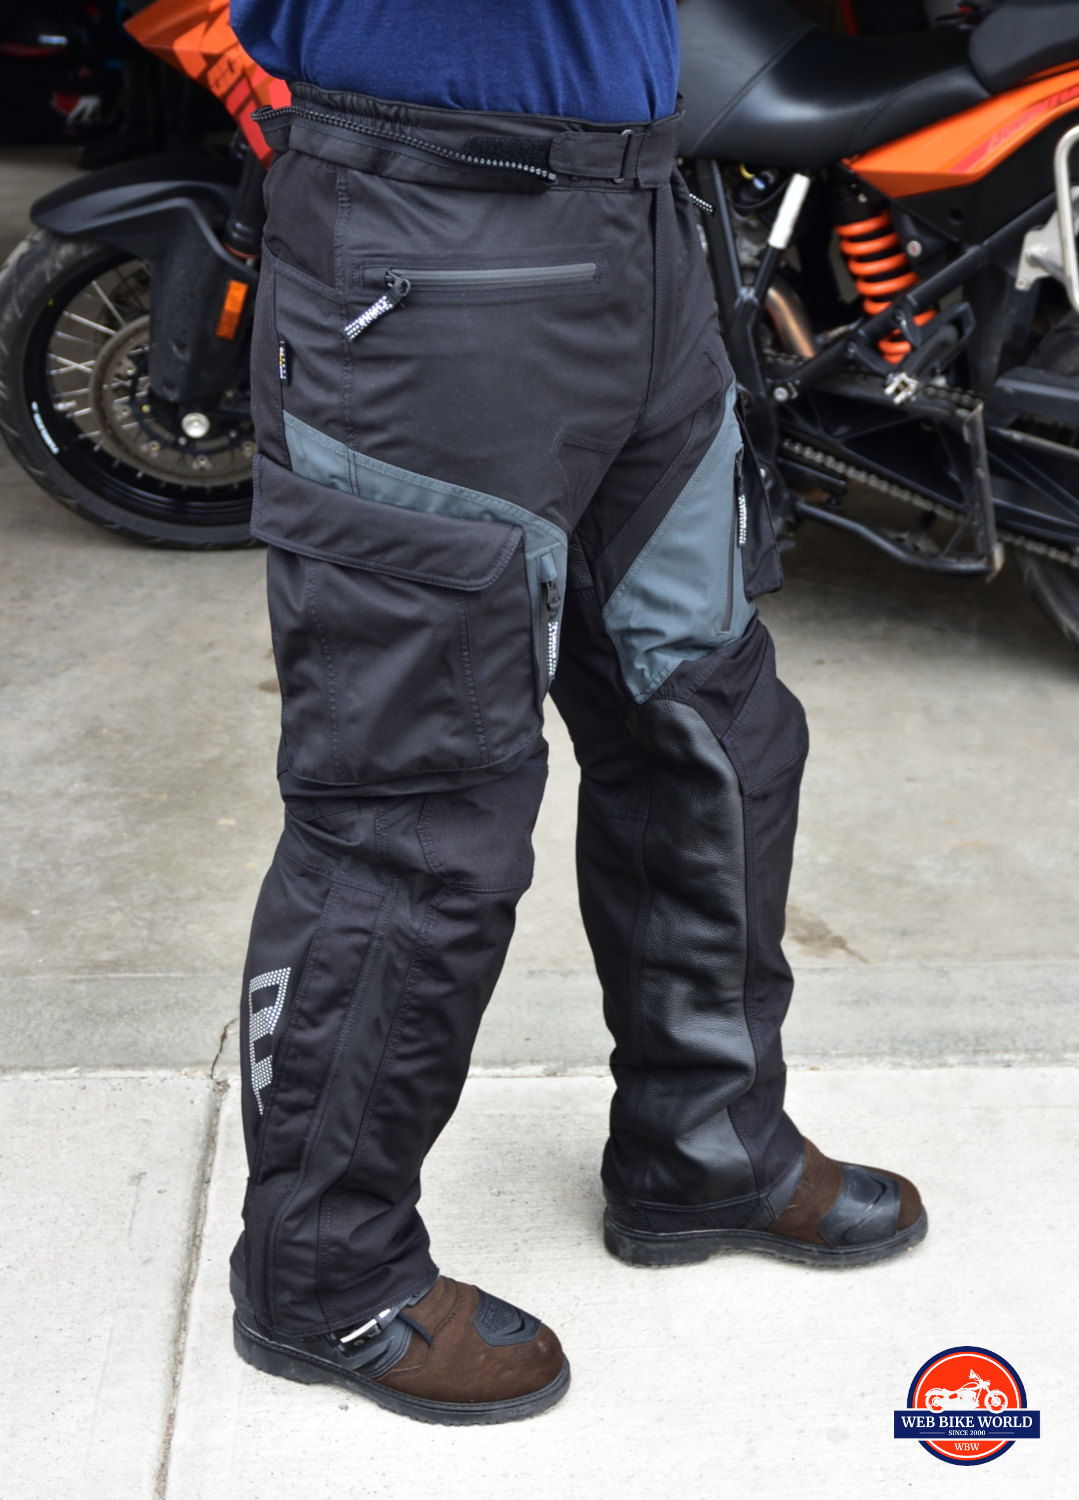 Rukka-ROR-motorcycle-jacket-pants-112